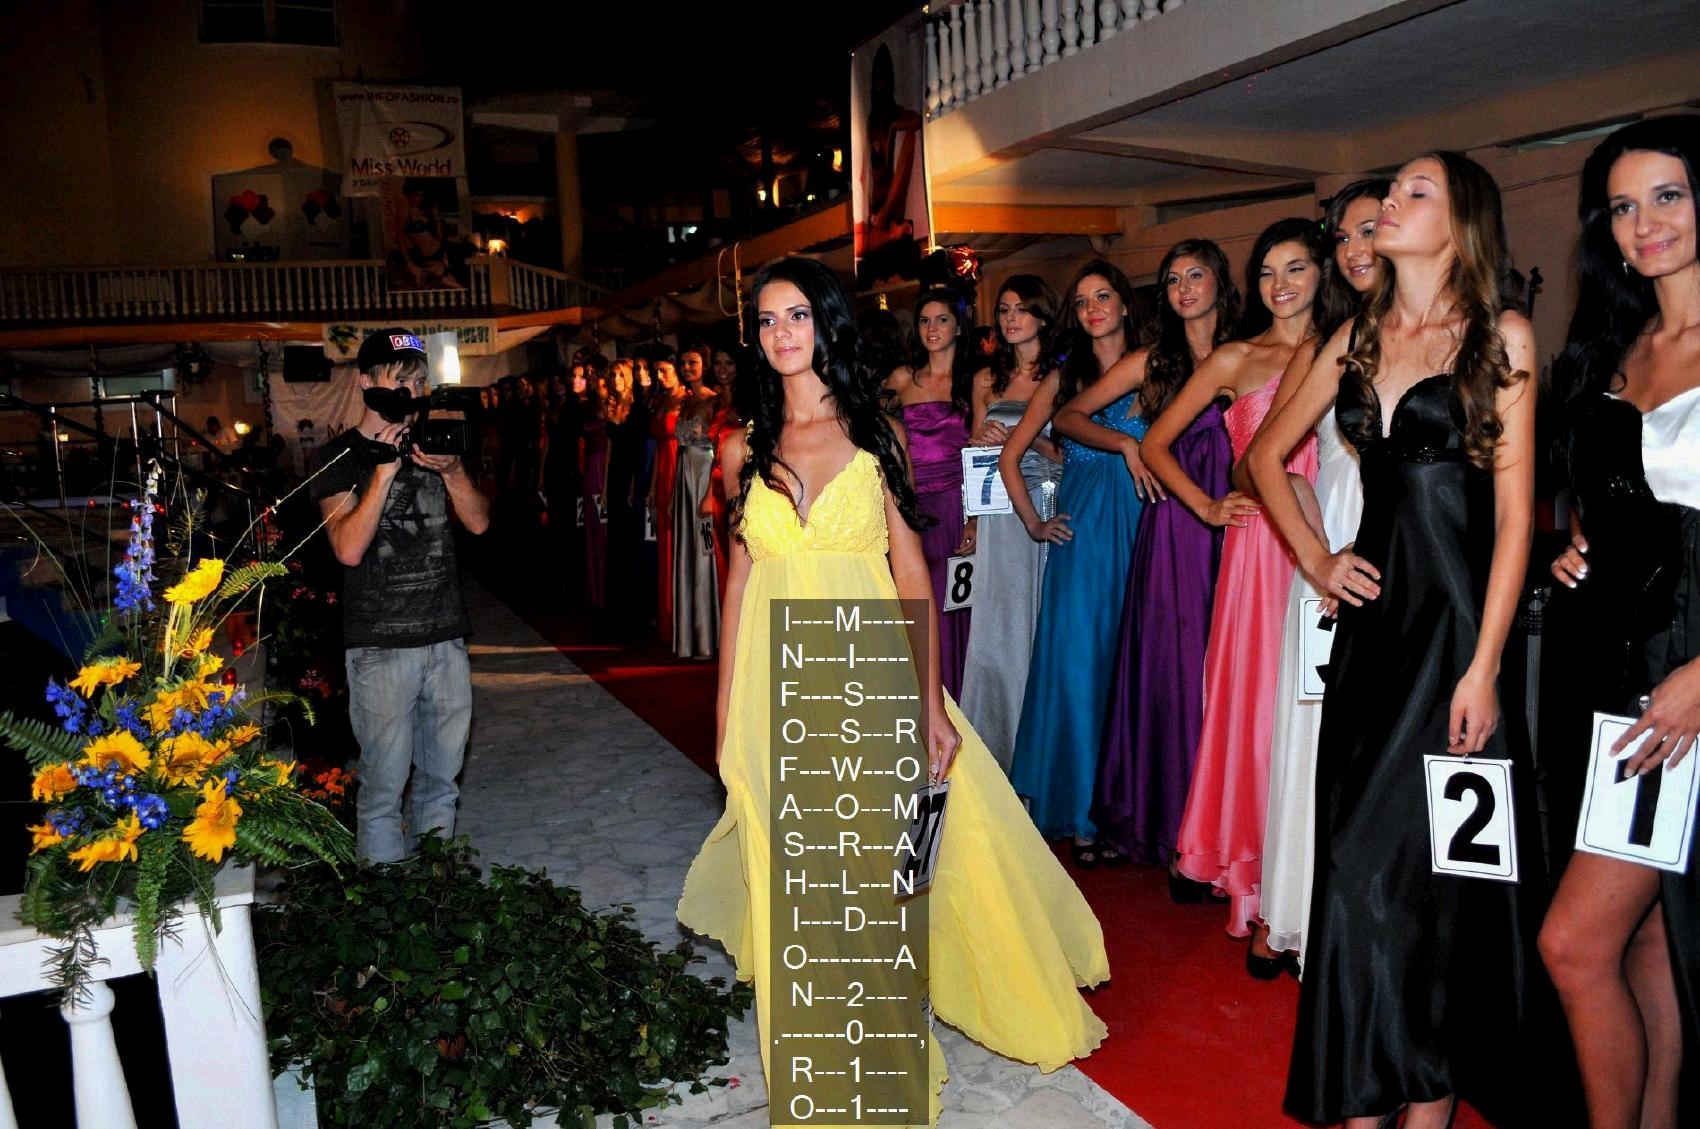 Casa Moda Grizley Montana (Marinangeli Nazzareno) la Miss World Romania